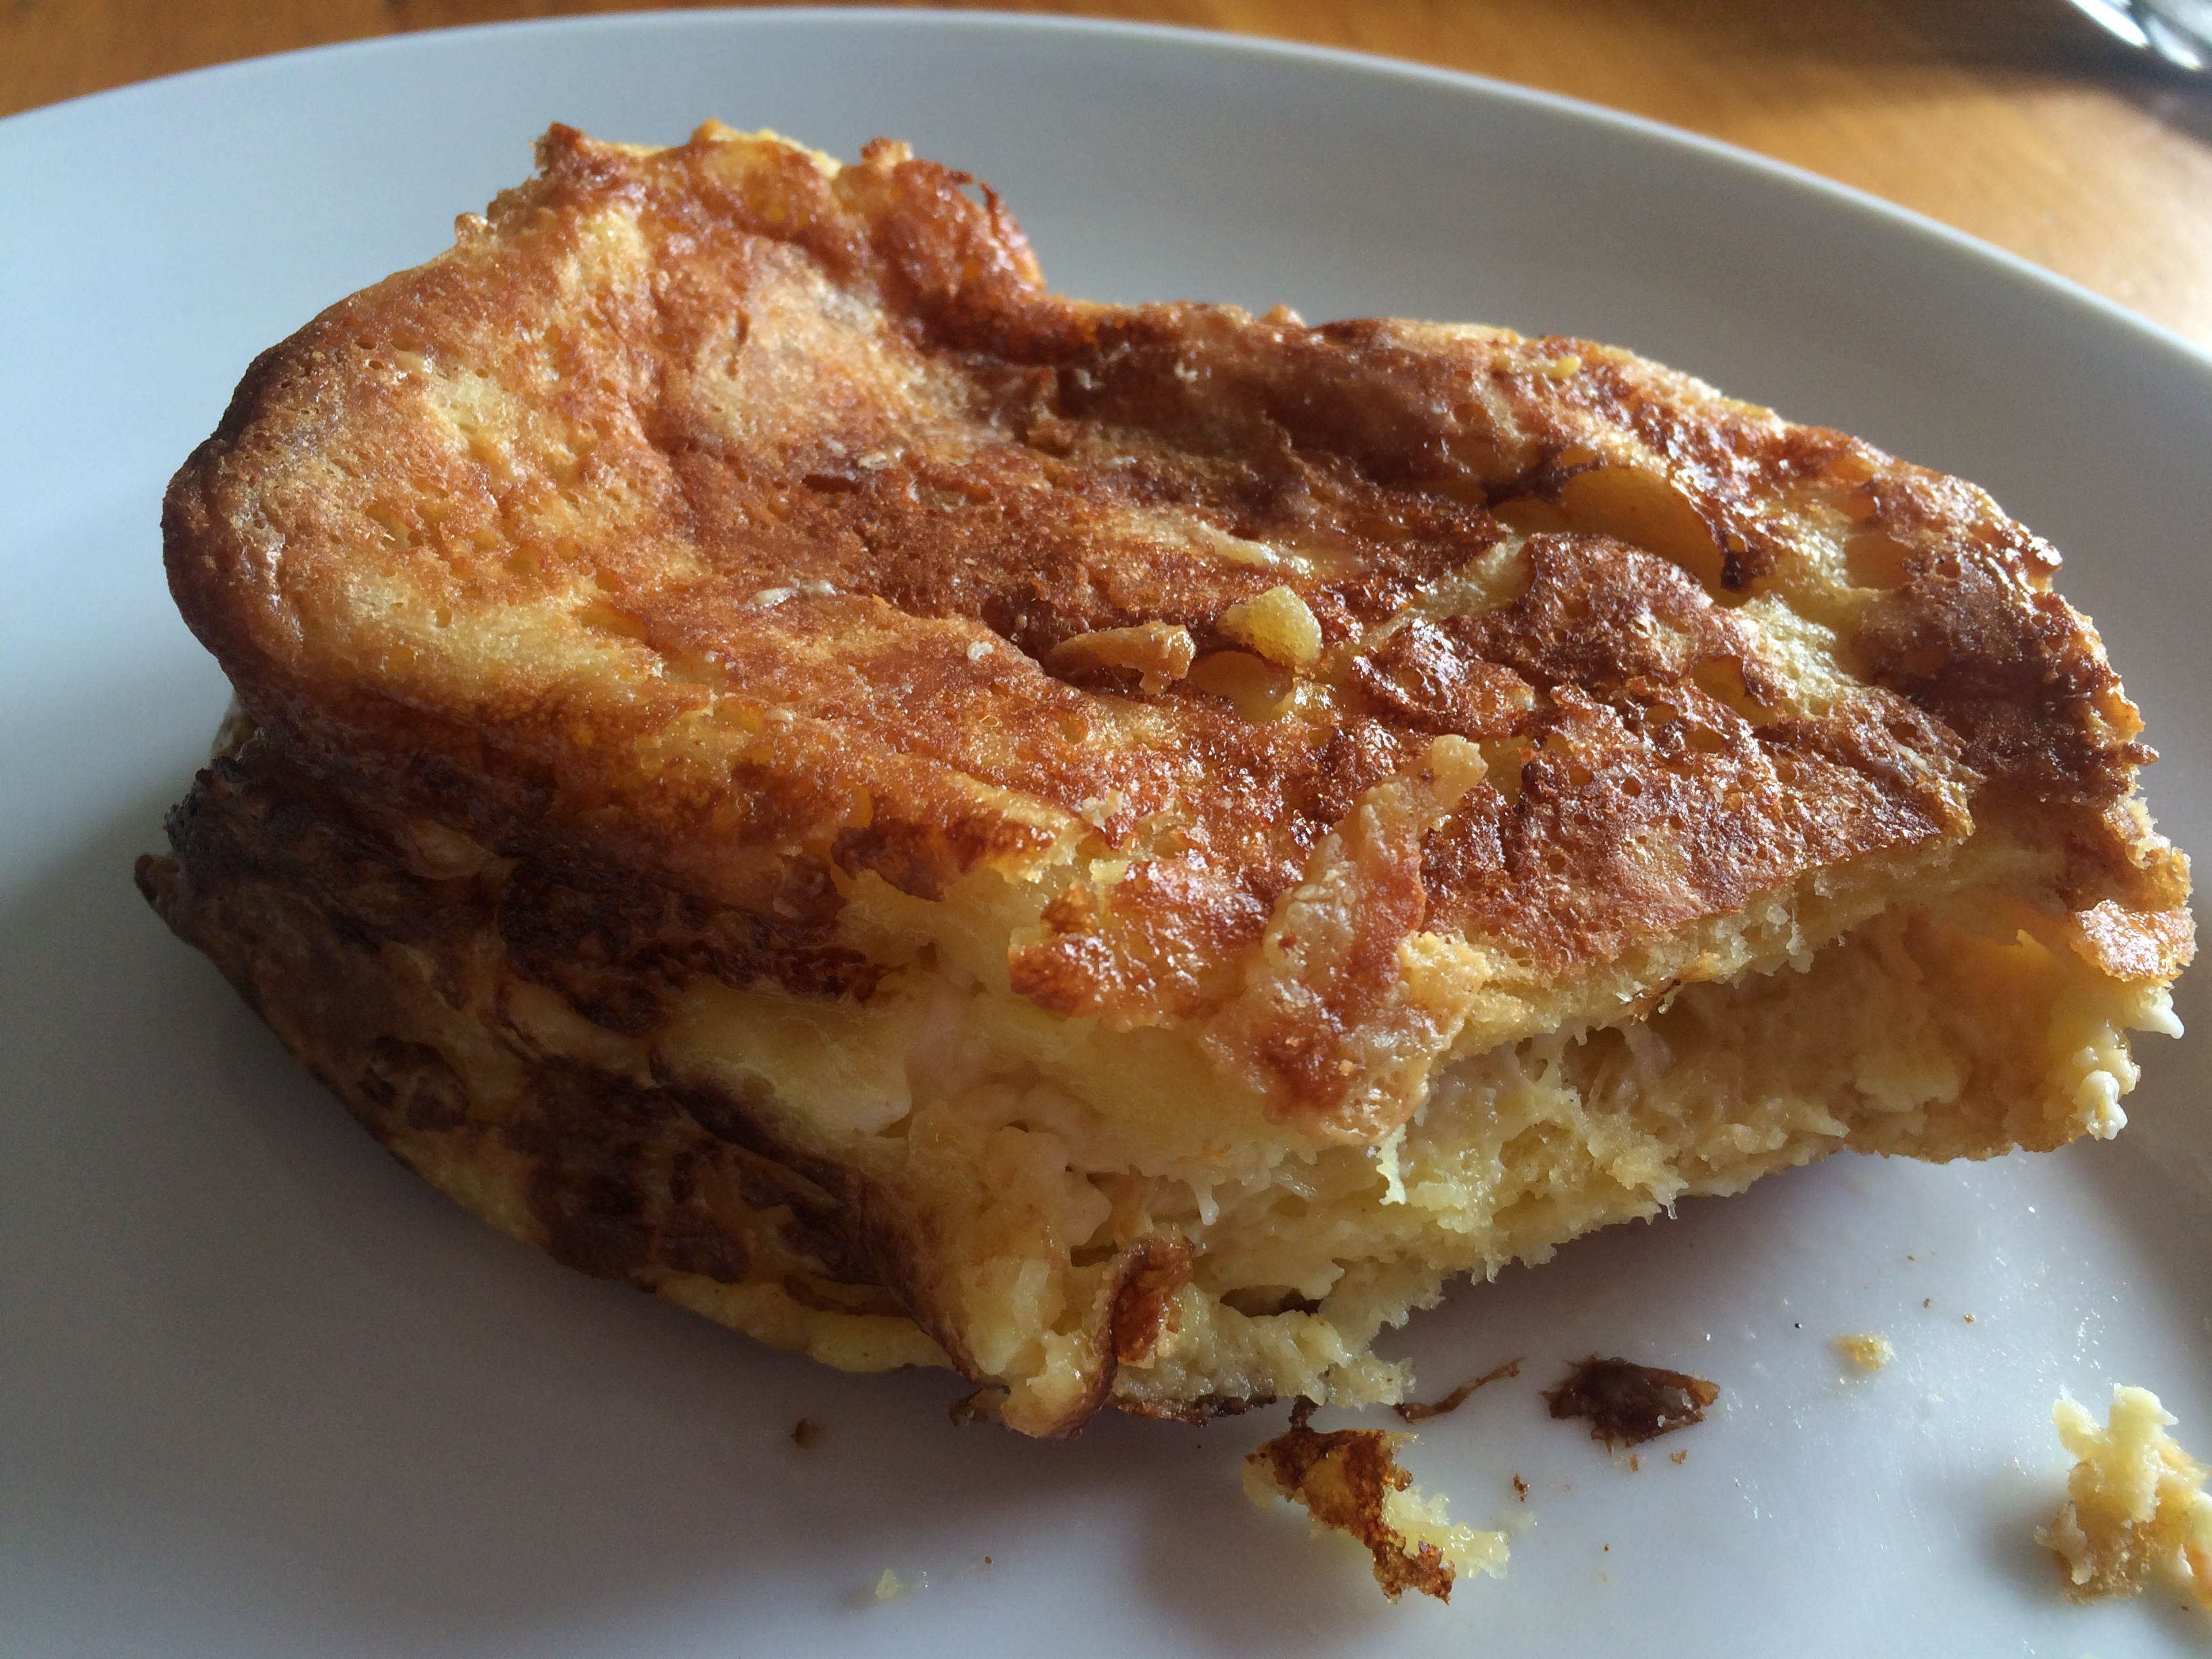 Finished stuffed french toast